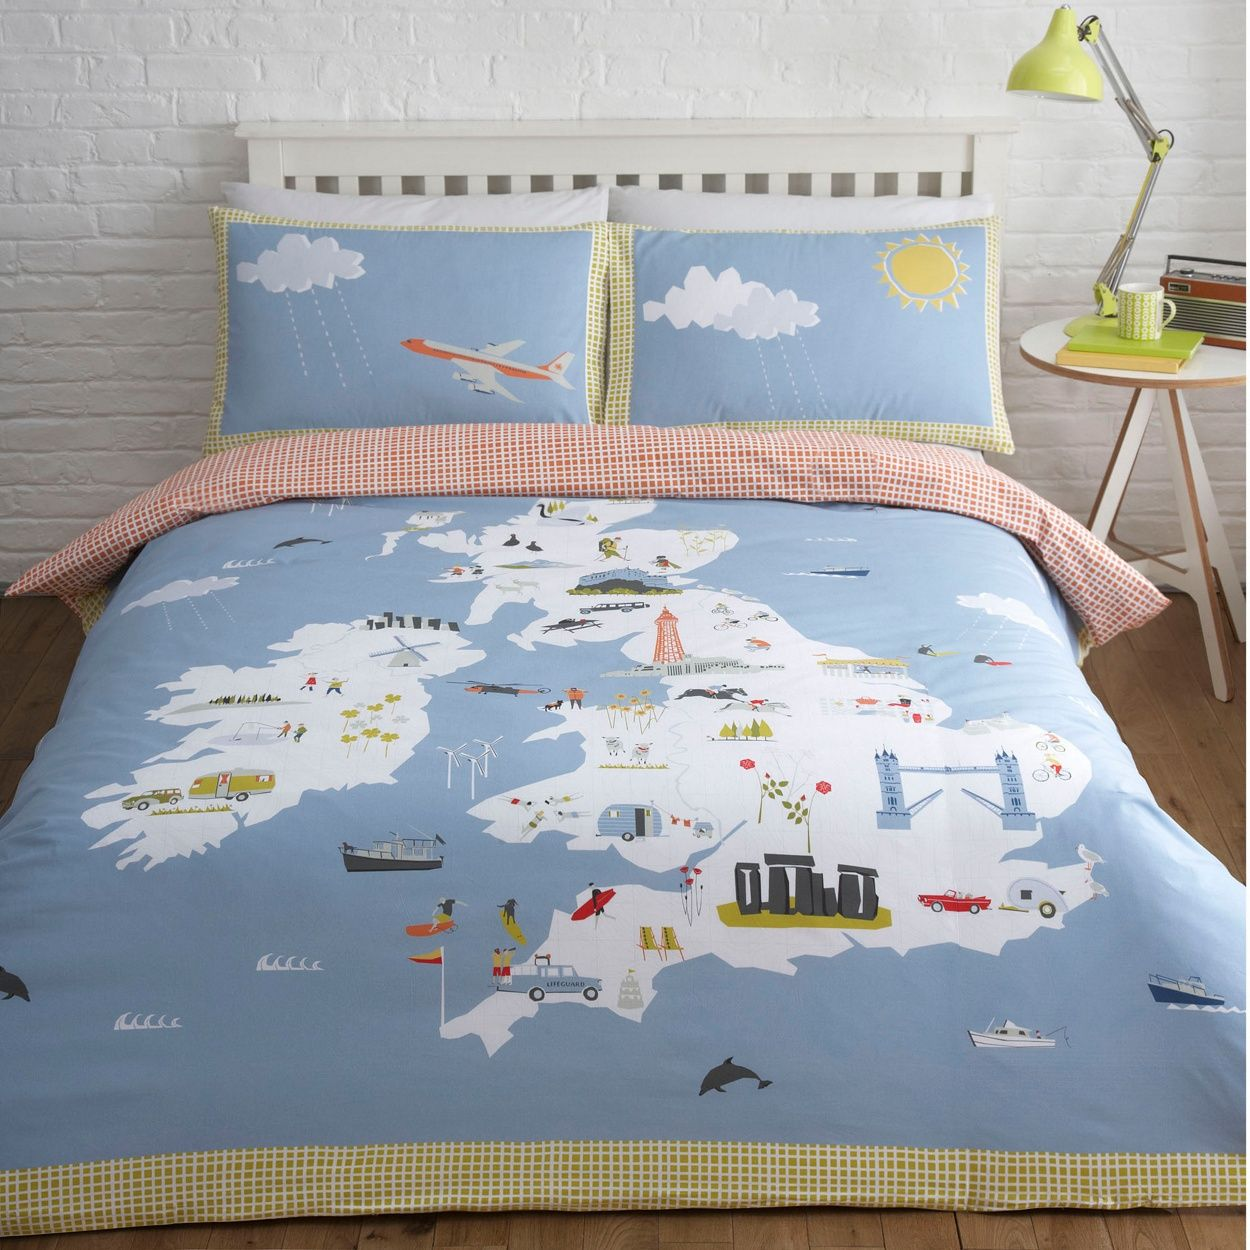 Yukari sweeneyedition blue british isles bedding set at yukari sweeneyedition blue british isles bedding set at debenhams gumiabroncs Image collections